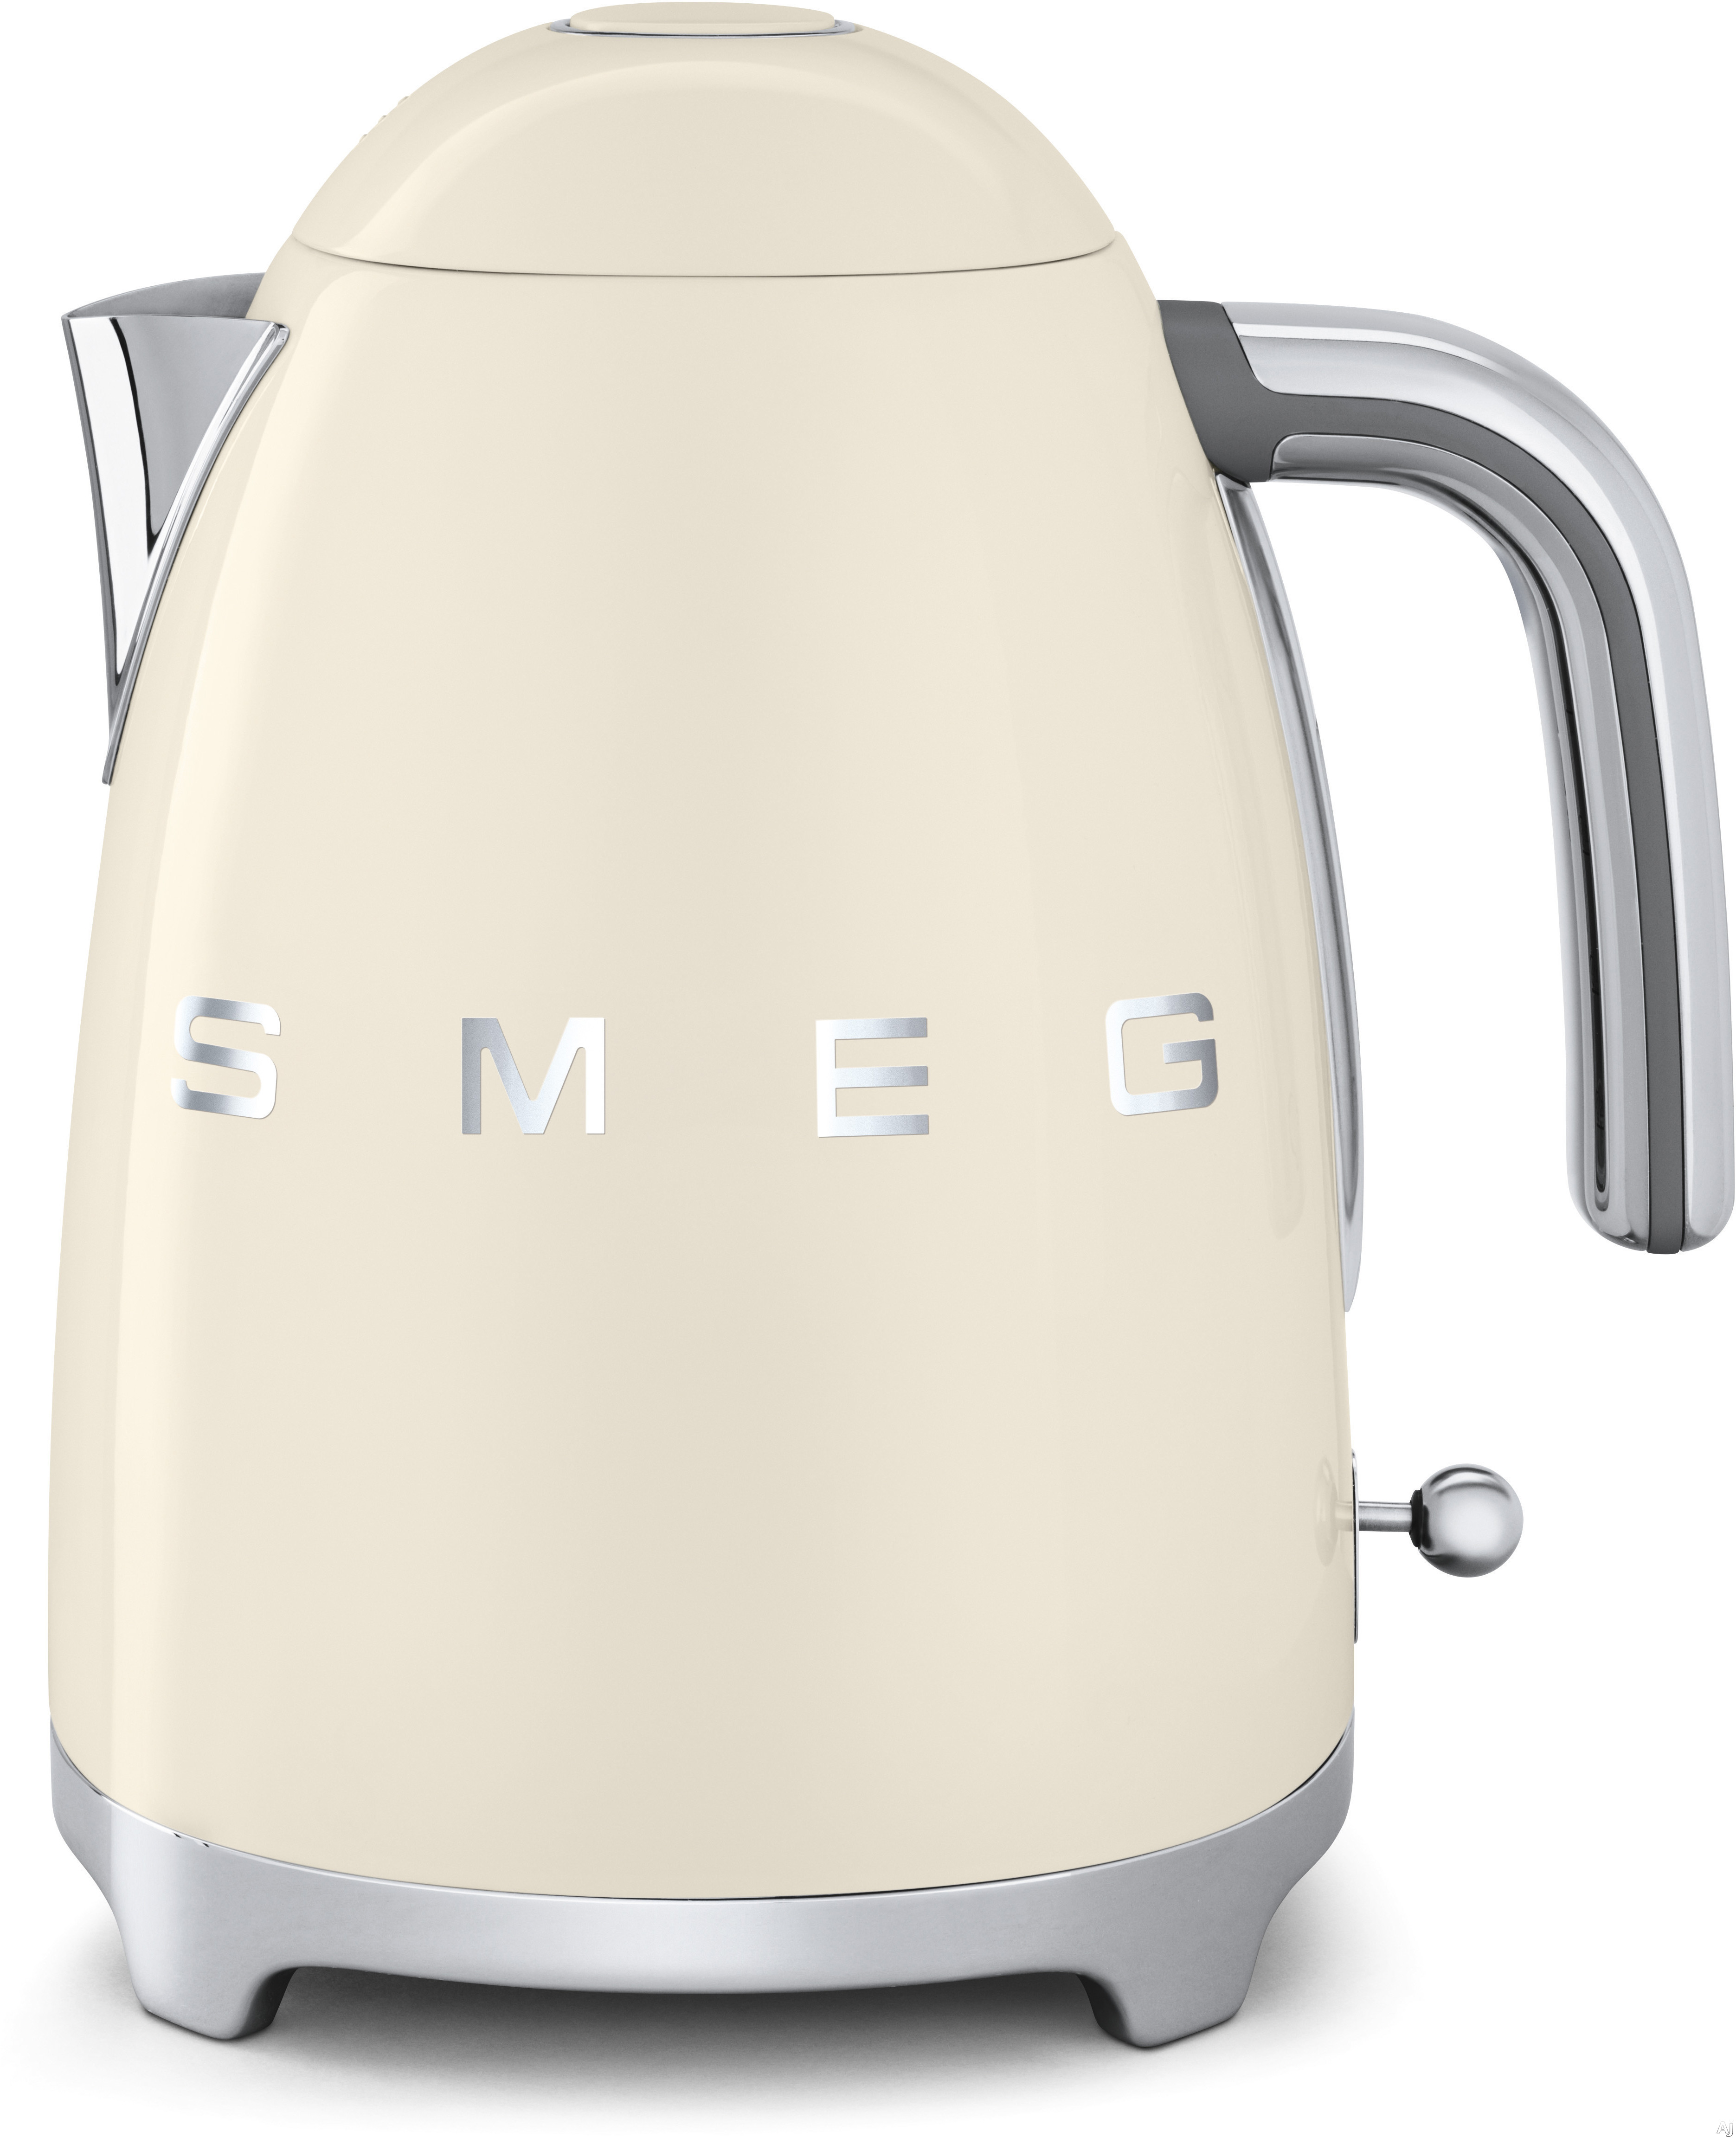 Smeg 50 s Retro Design KLF01CRUS Electric Kettle with 56 oz. Capacity Soft Opening Lid Auto Shut Off 360 Degree Swivel Base Anti Slip Feet and Built in Cord Wrap Cream